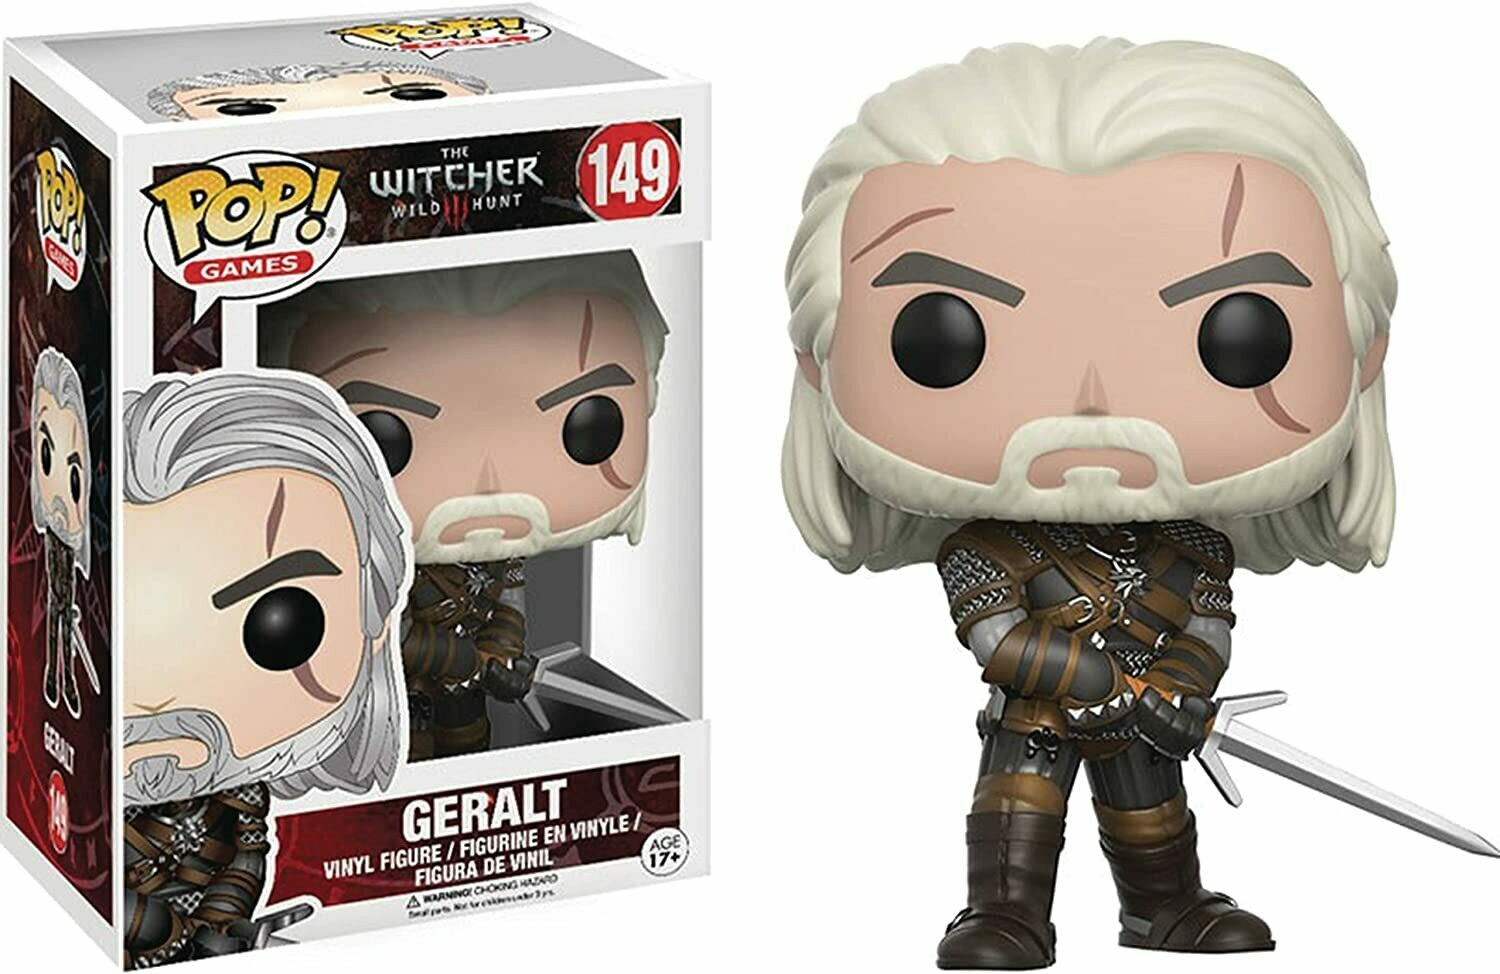 Funko Pop! Geralt - The Witcher